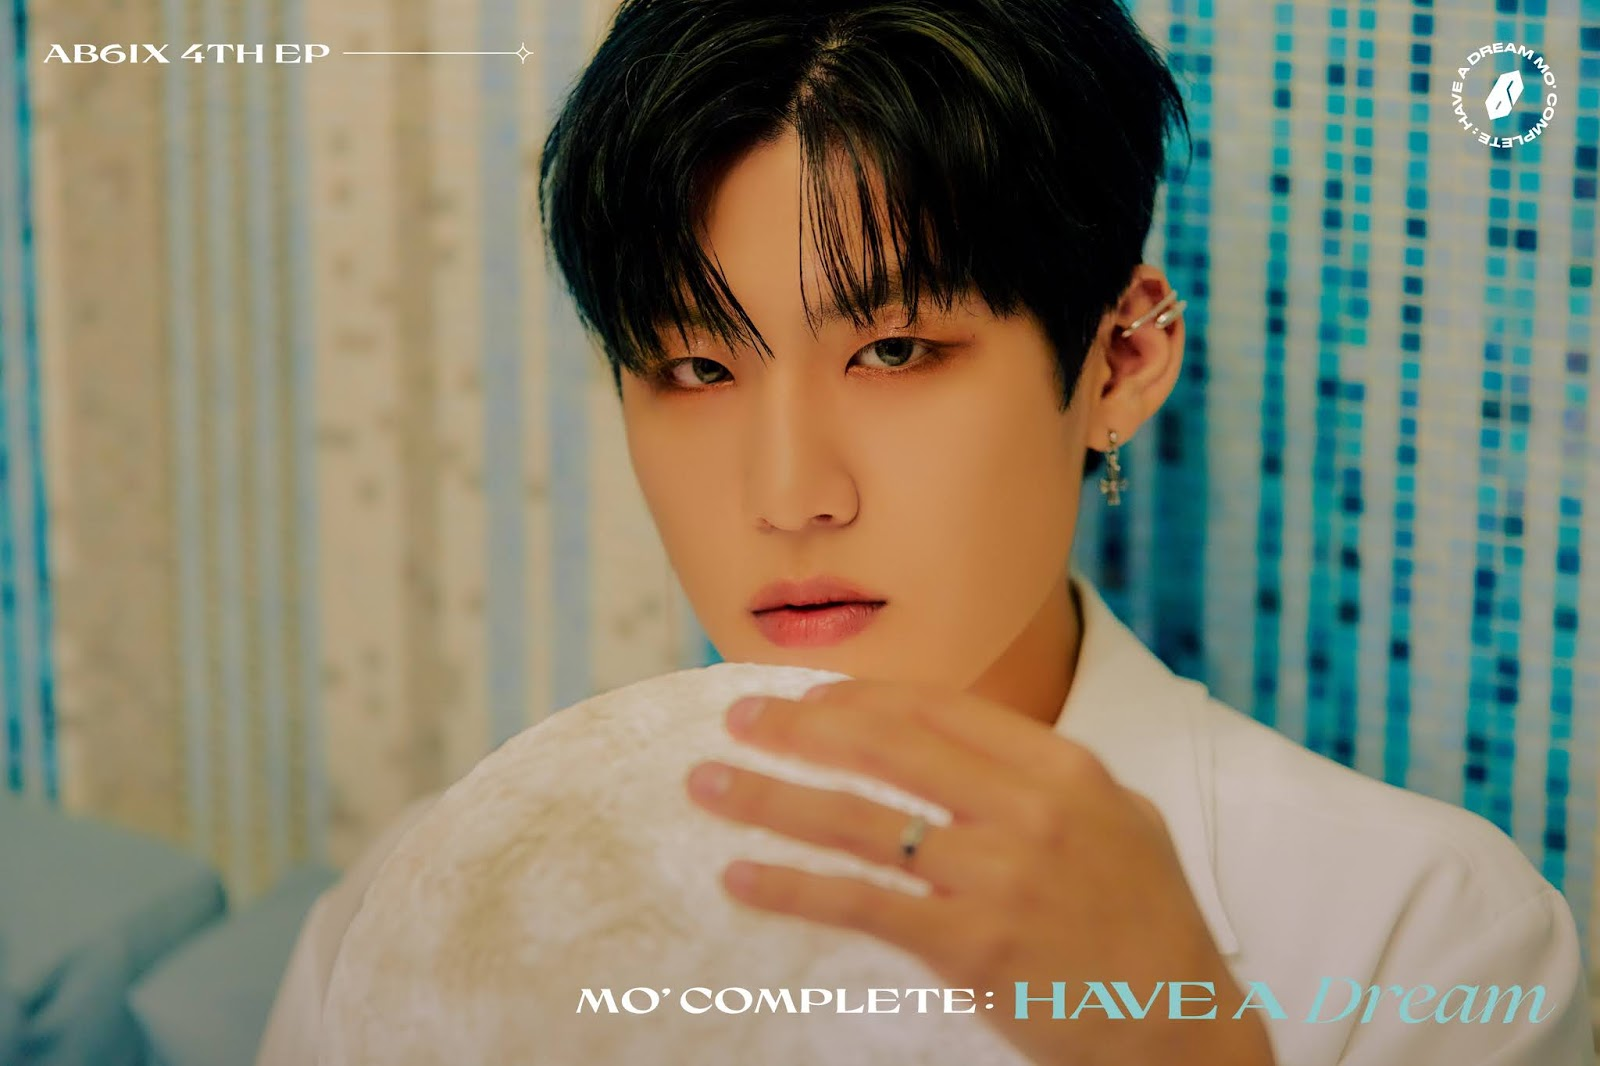 ab6ix mo complete have a dream teaser 2 woojin